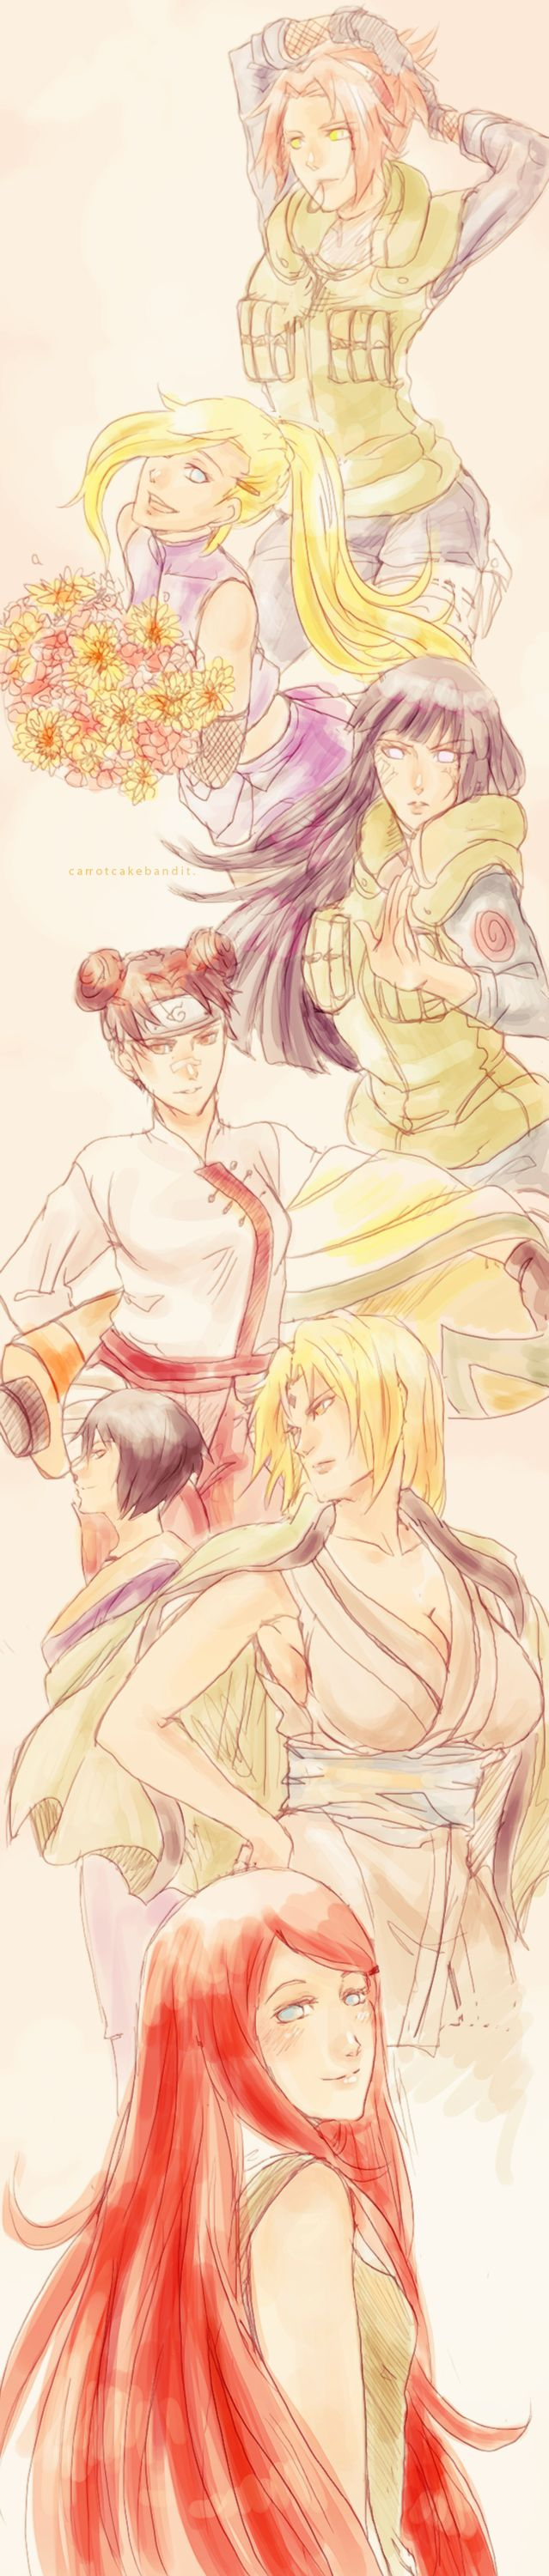 When you find a good illustration   Naruto girls - by Carrotcakebandit on tumblr